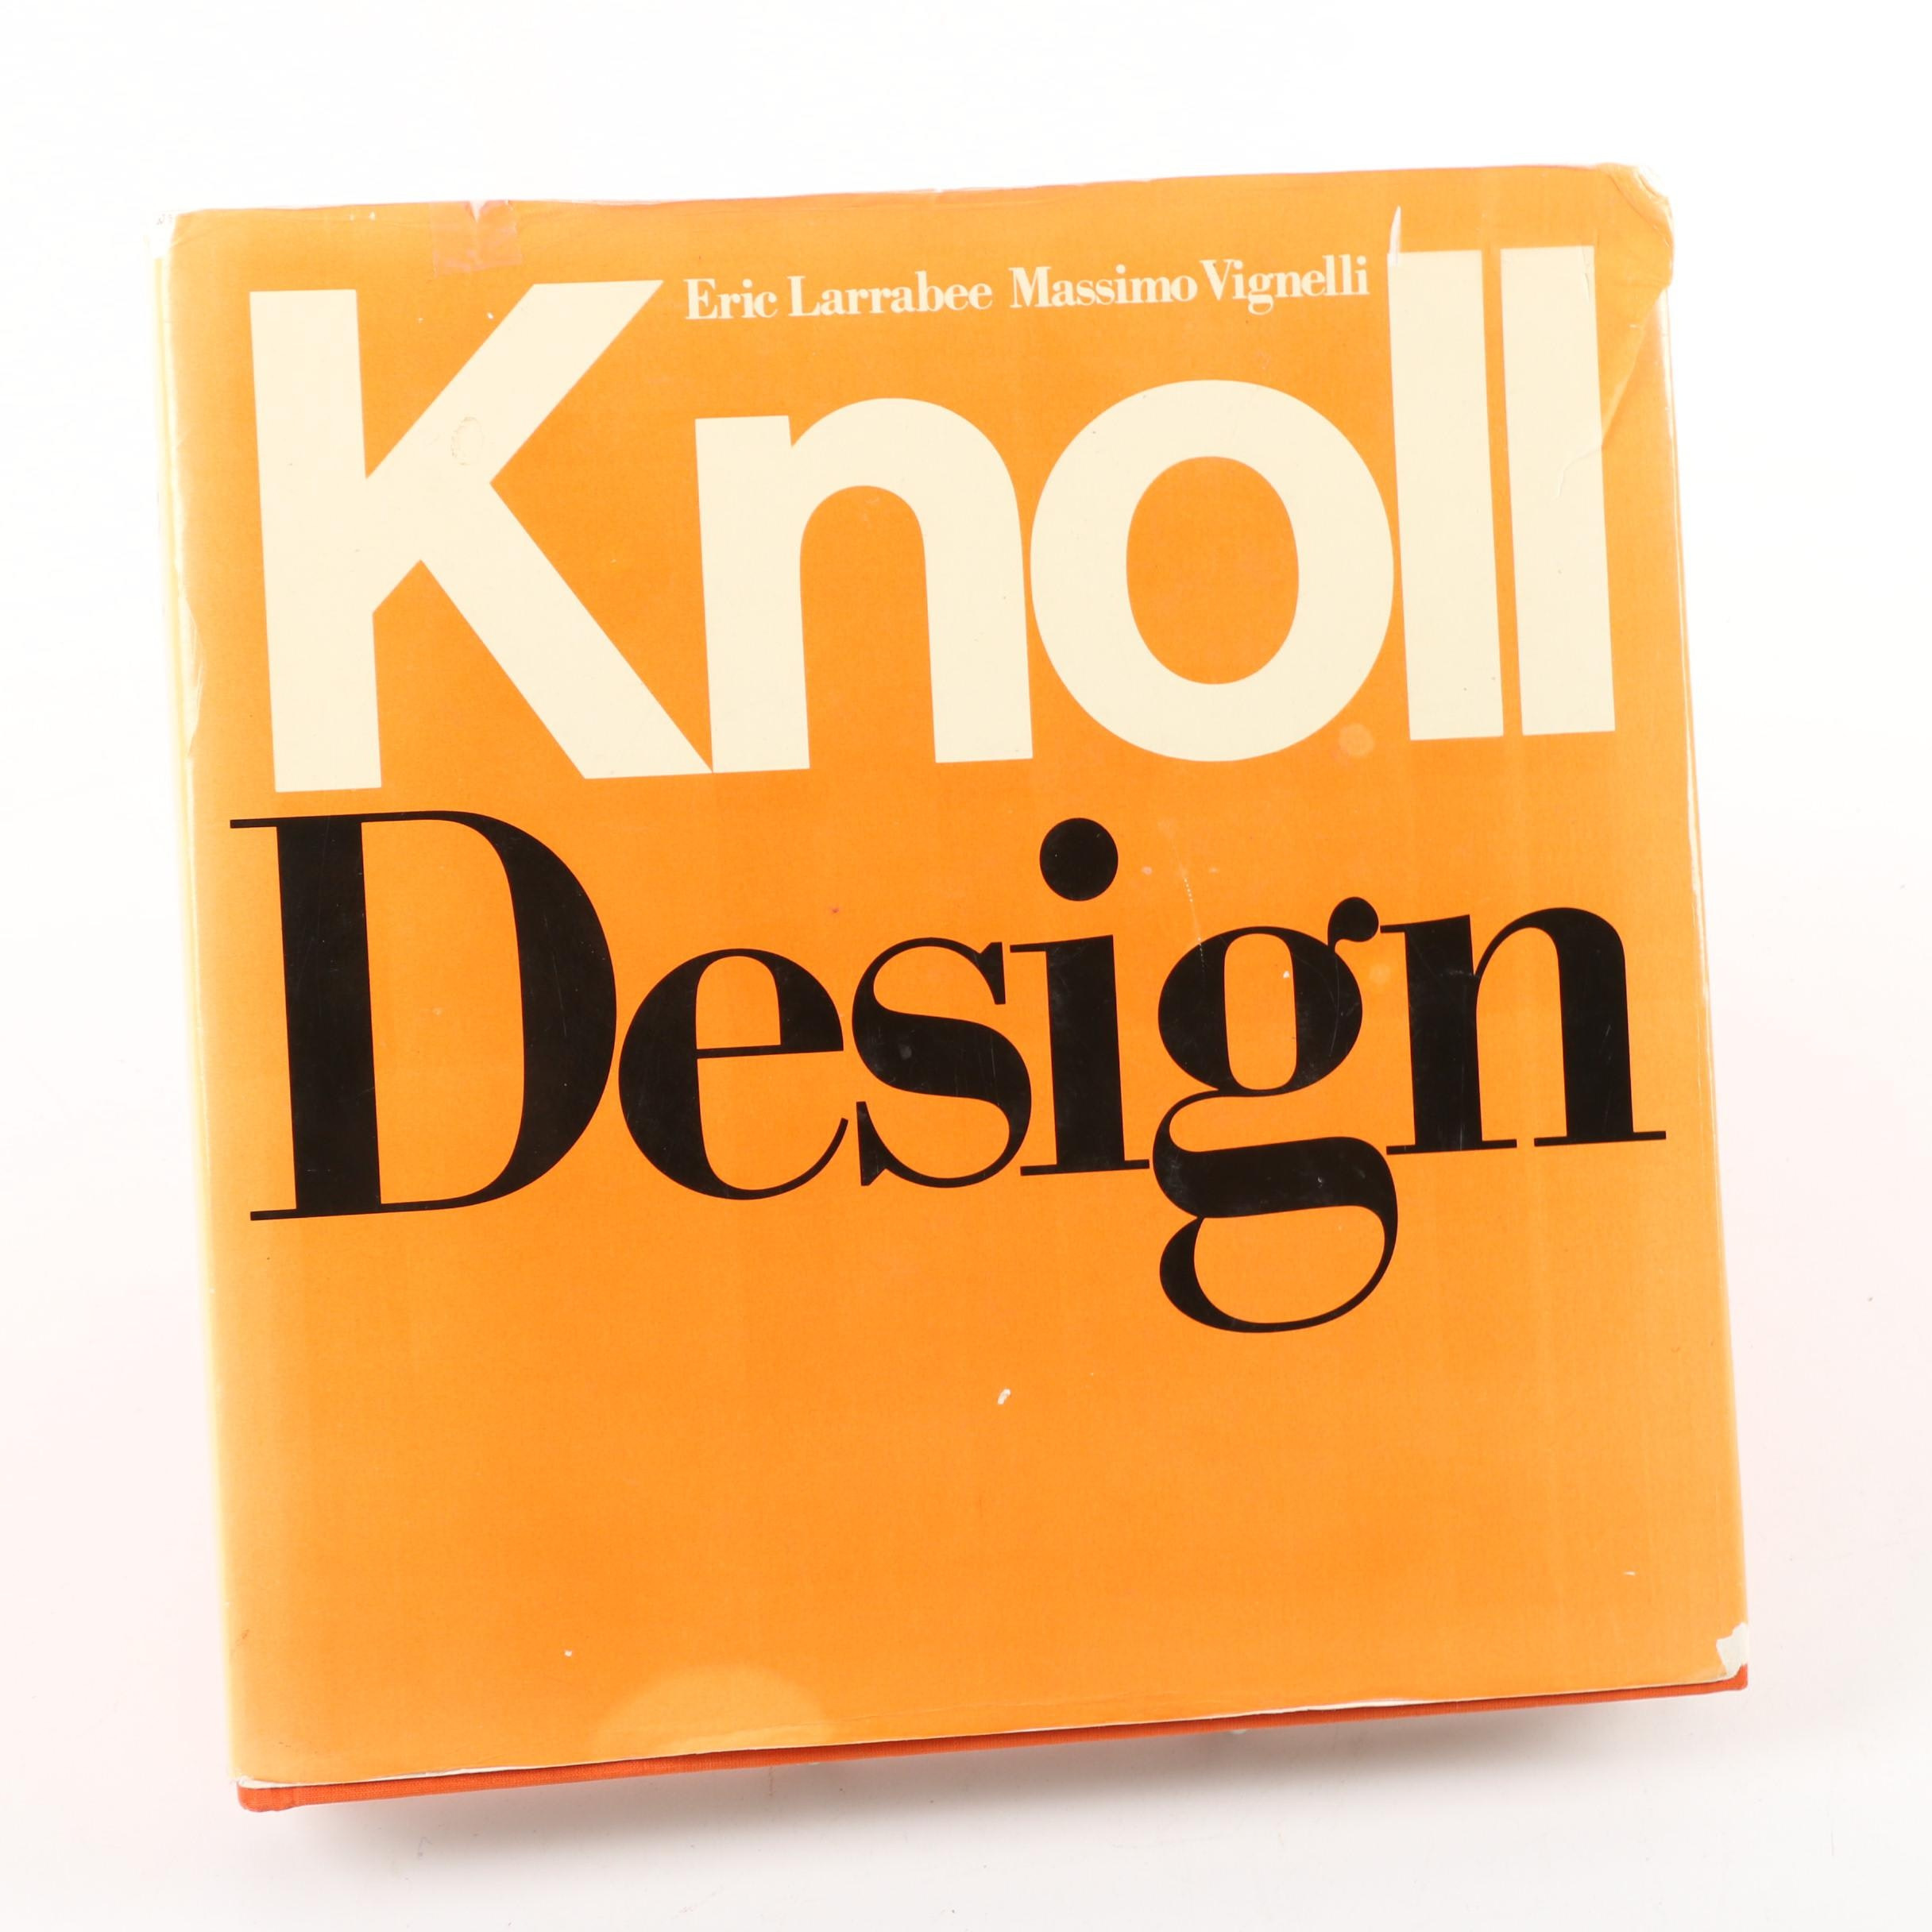 """1990 """"Knoll Design"""" by Eric Larrabee and Messimo Vignelli"""